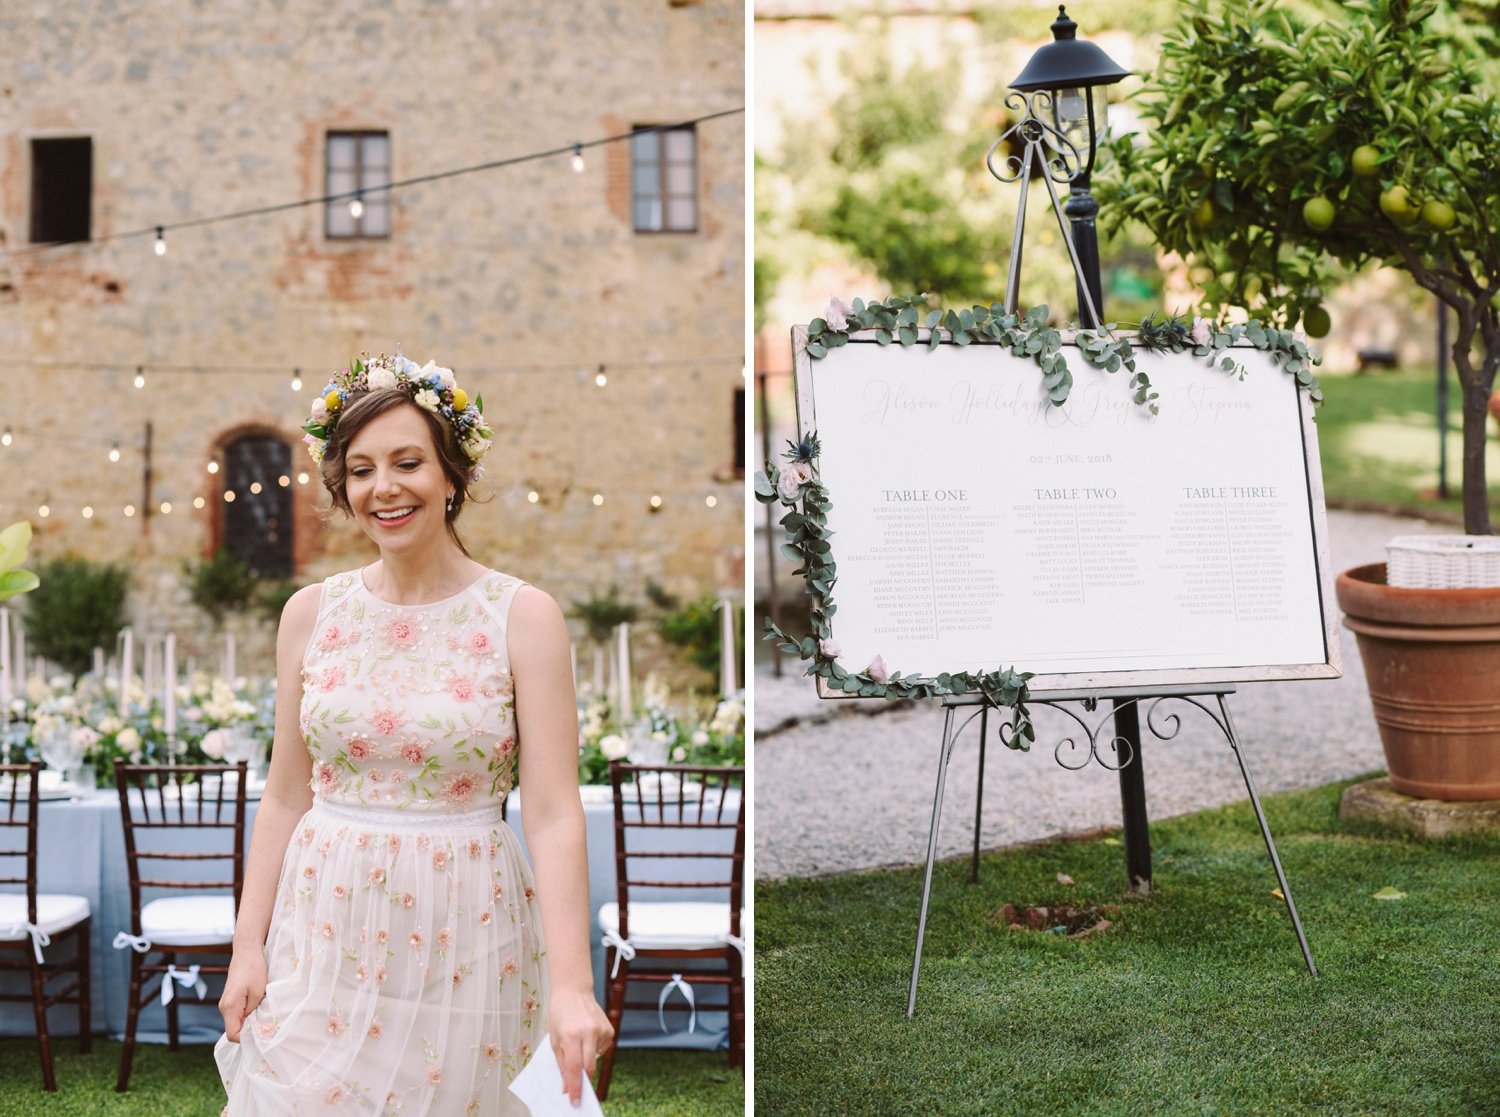 landvphotography_wedding_photographer_tuscany_0124.jpg